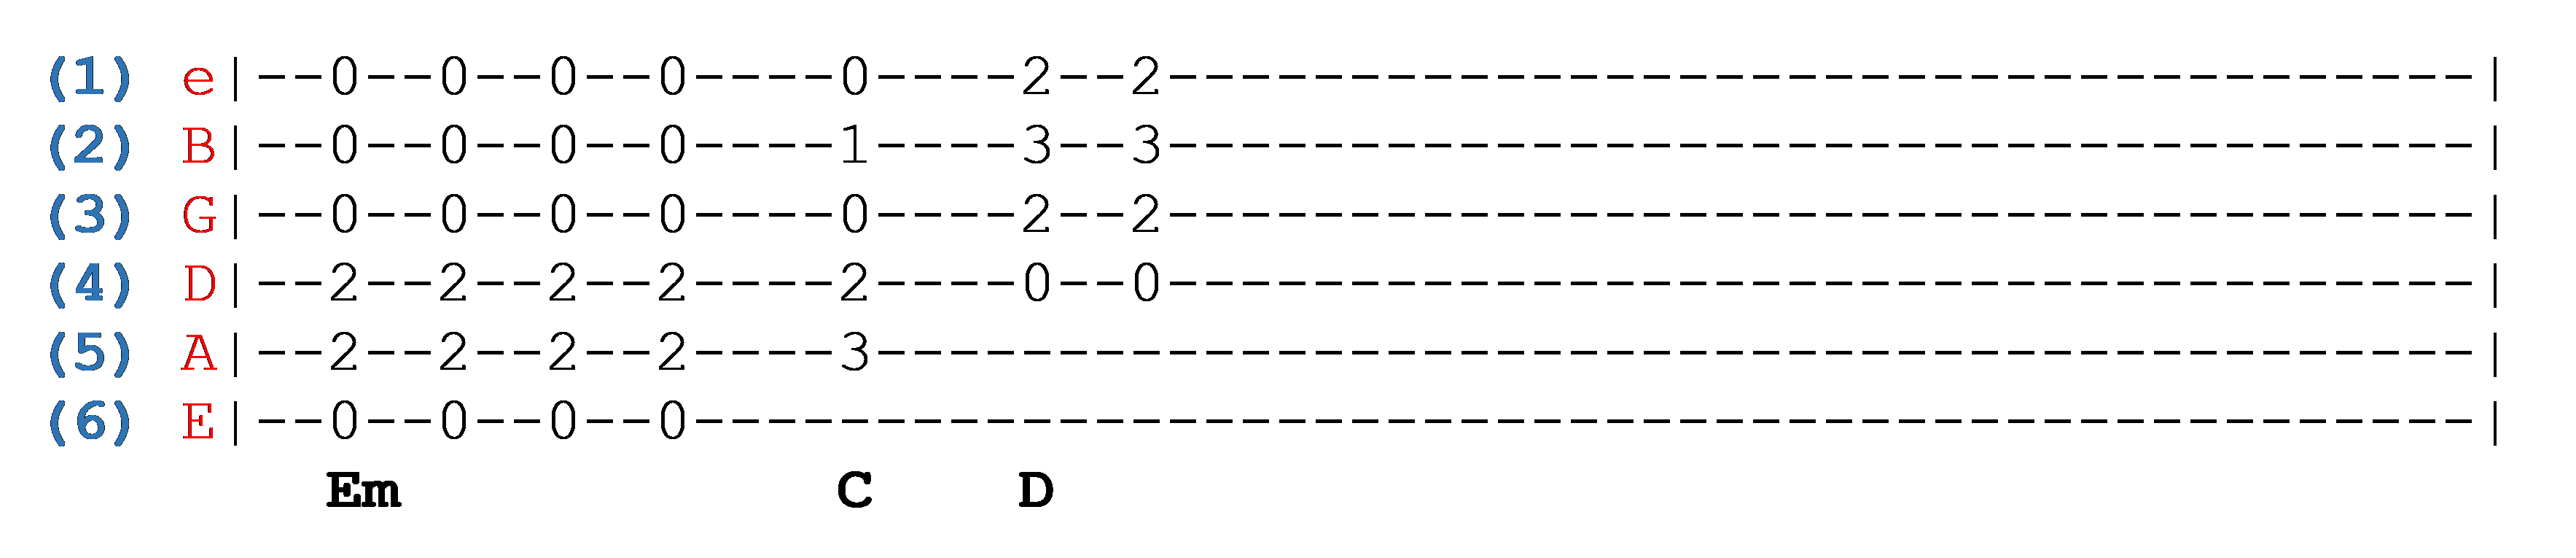 Learning how to read guitar tab beginner guitar lesson how to read guitar tab example 3 hexwebz Gallery